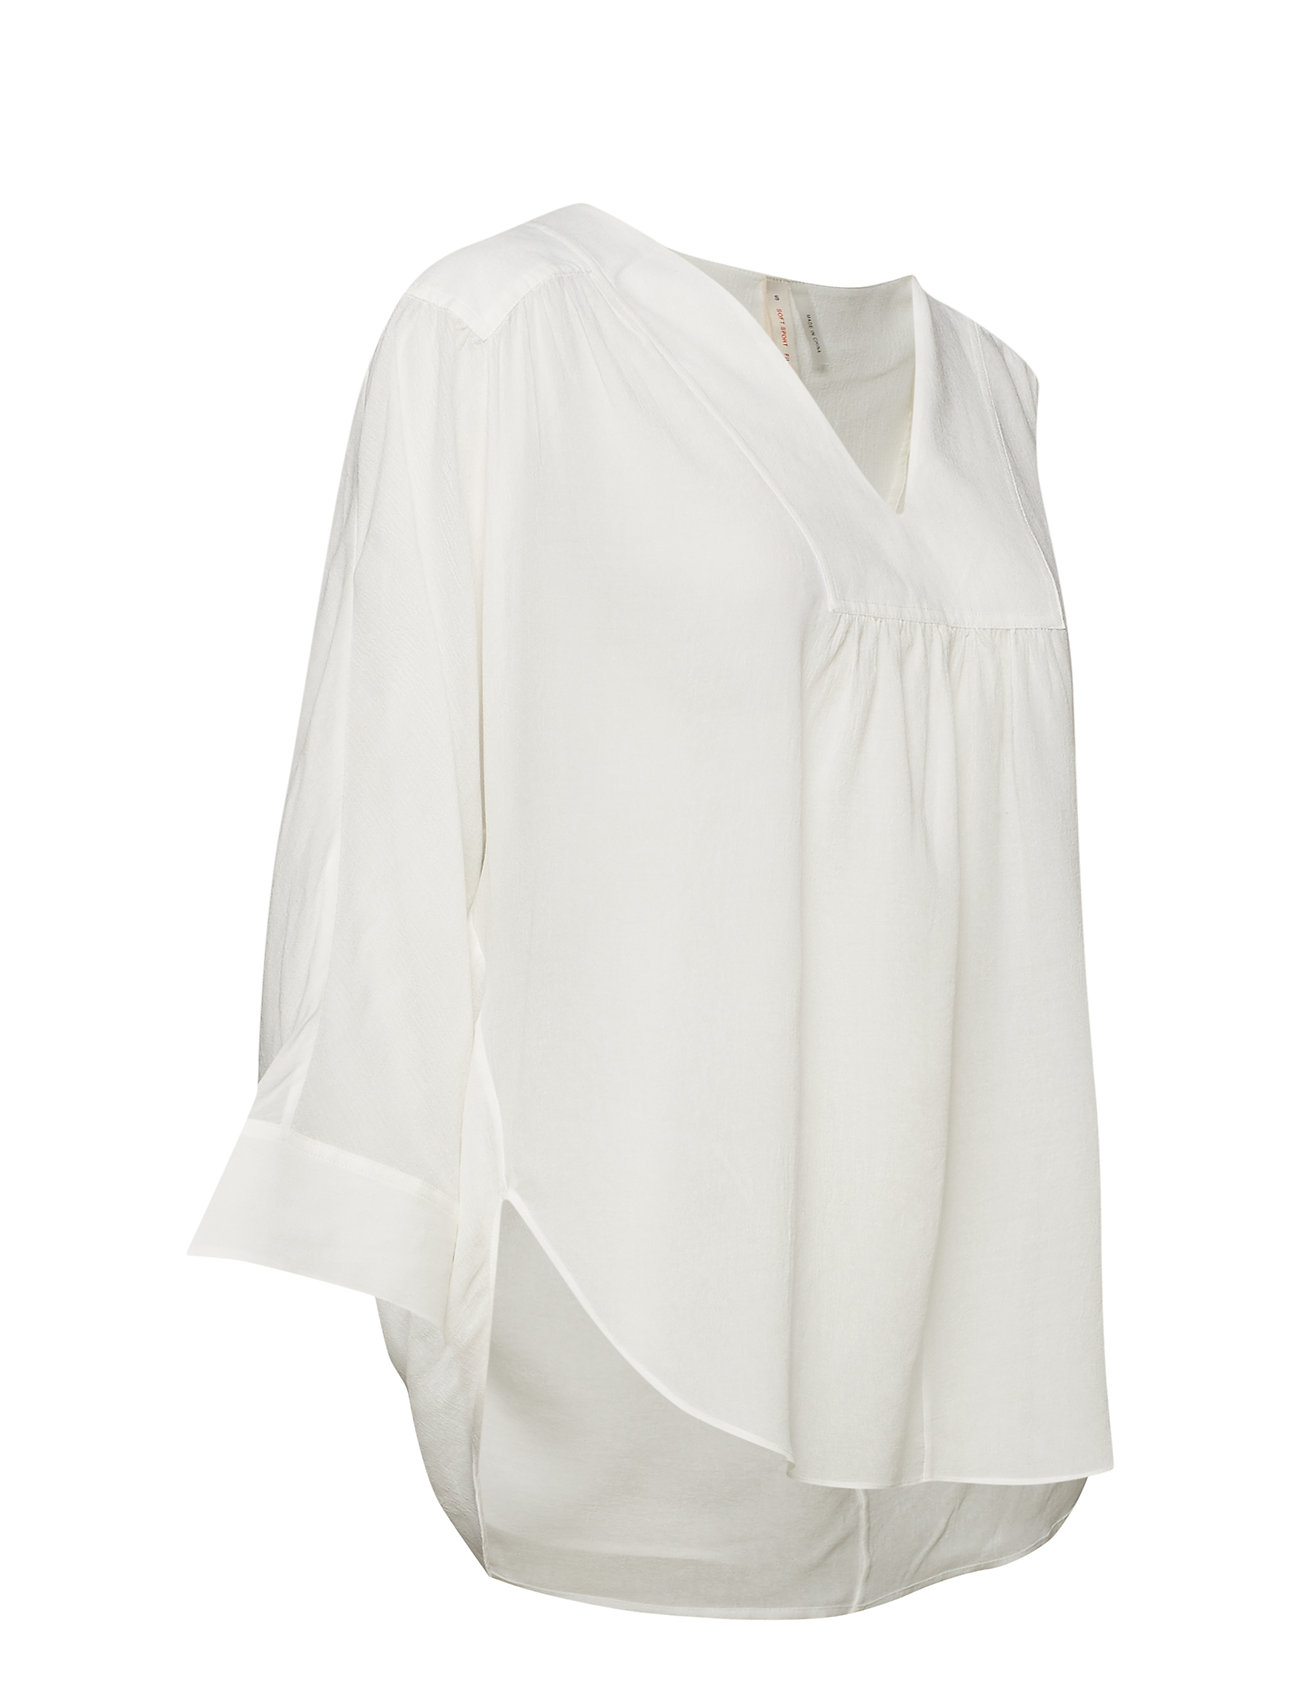 Filippa K Soft Sport Gathered Beach Tunic (Off White) 849 kr | Stort utbud av designermärken JCodeHIl